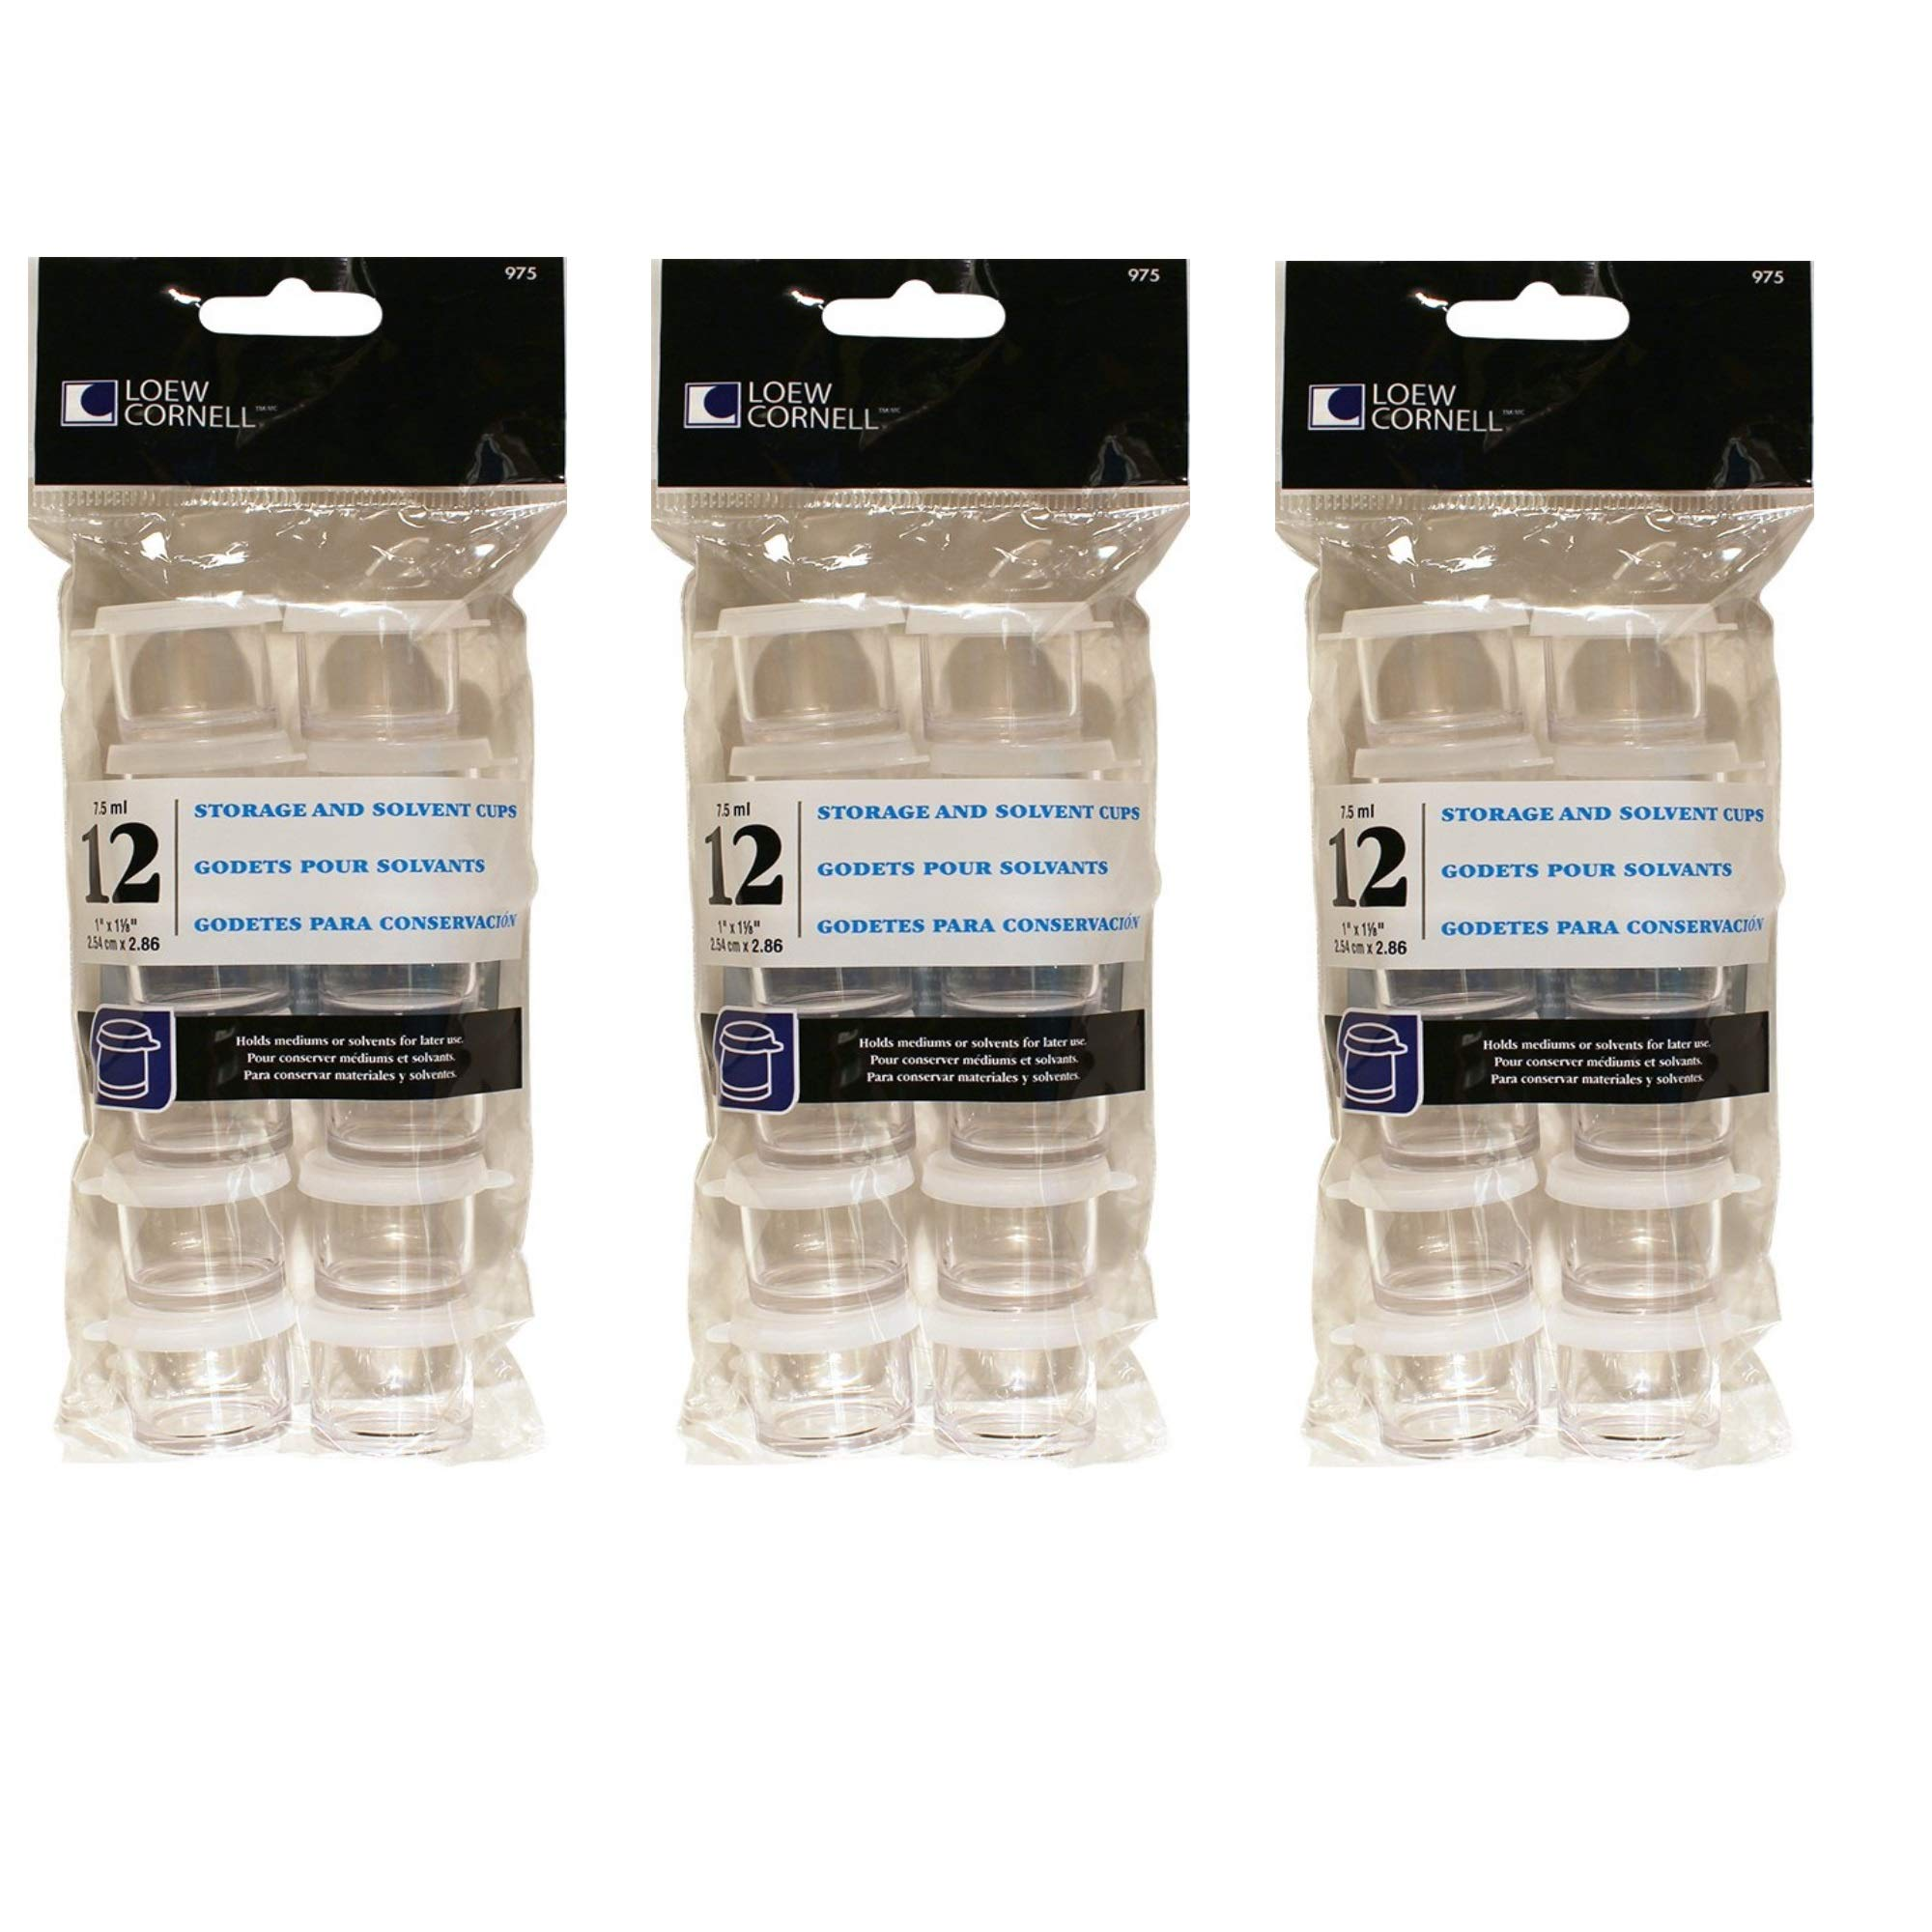 Loew-Cornell 975, 1 Inch Storage Cups, 12 Count, 3 Pack